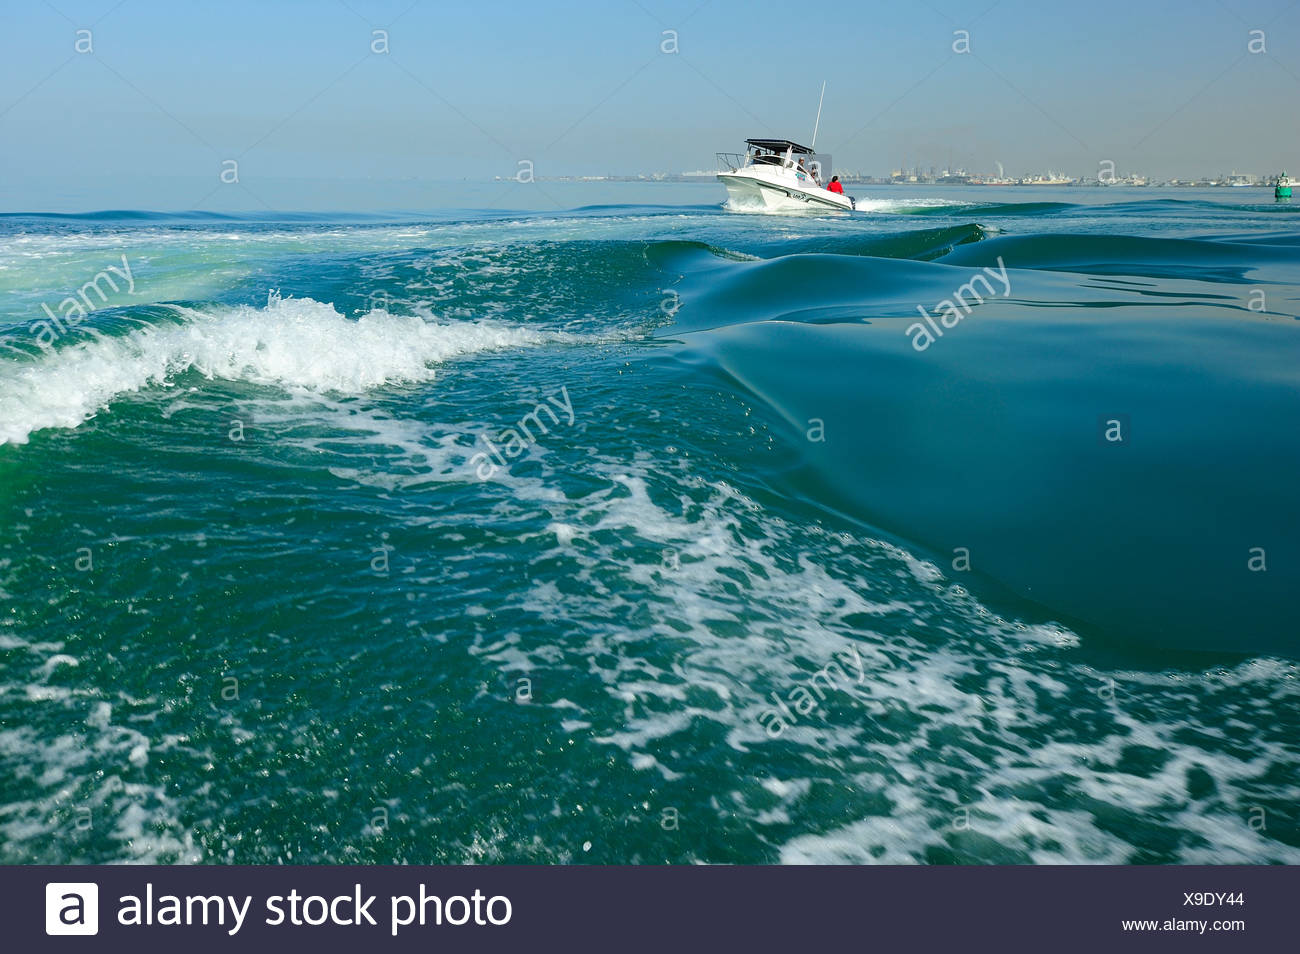 Africa, Namibia, boat, sea, waves, - Stock Image